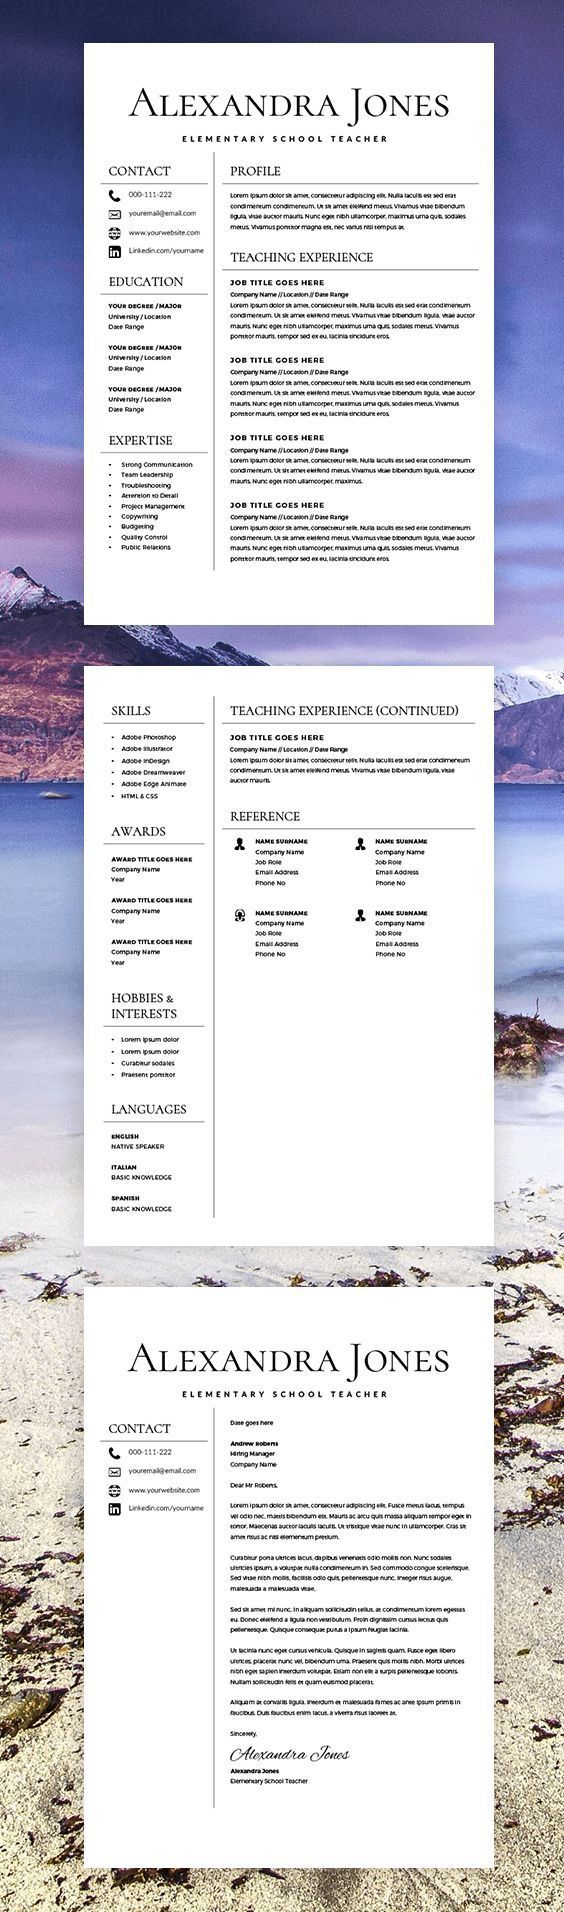 teacher resume teacher cv cv template free cover letter ms word. Resume Example. Resume CV Cover Letter